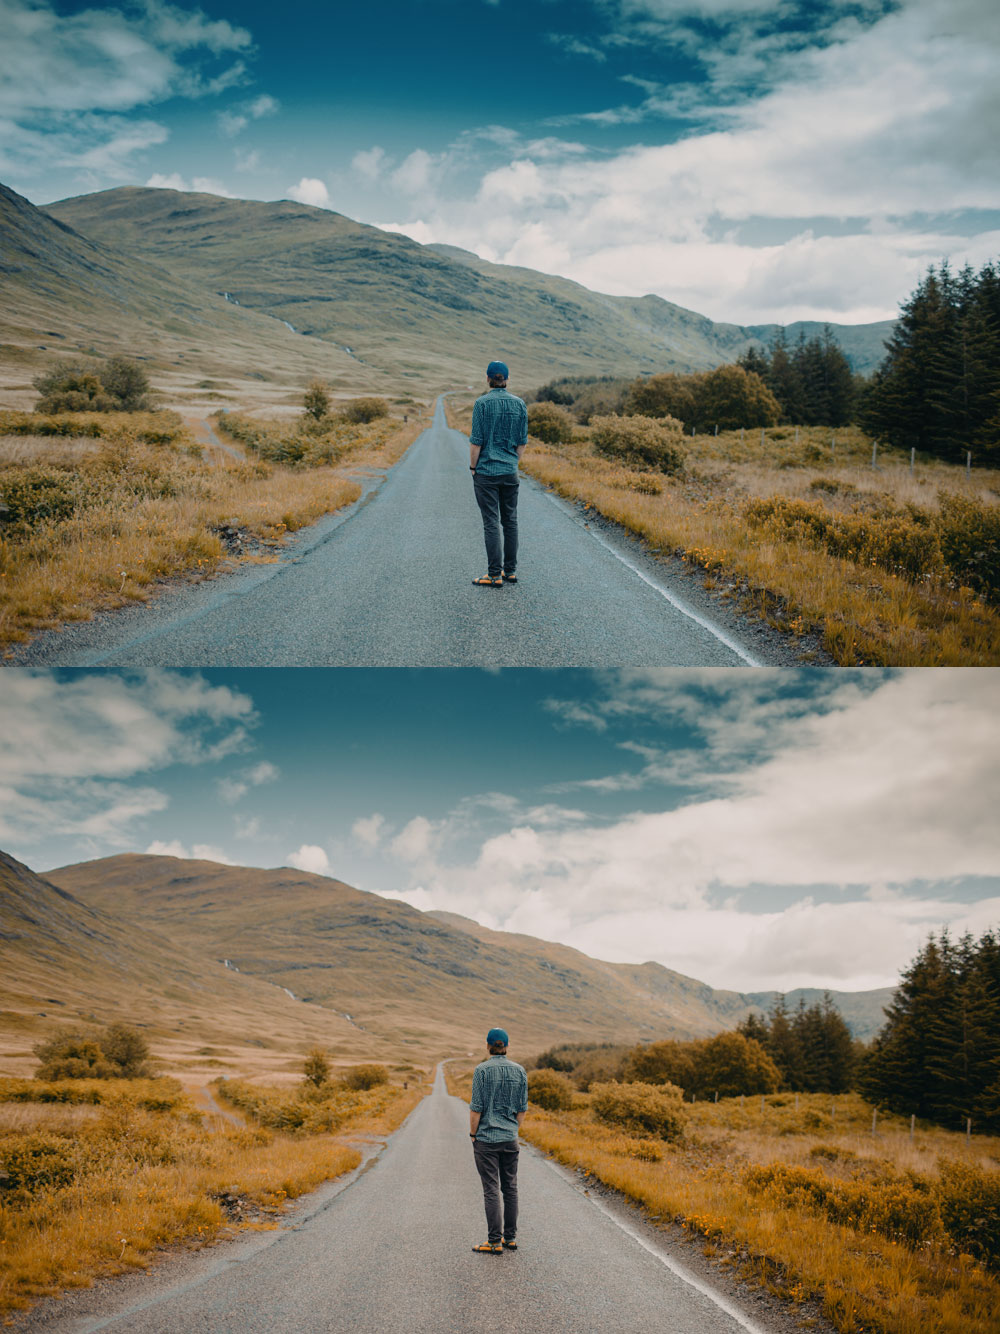 Here we have the same LUT applied to correctly white balanced image (bottom) and to an image shot with cooler white balance (top). As we can see, the results are very different.